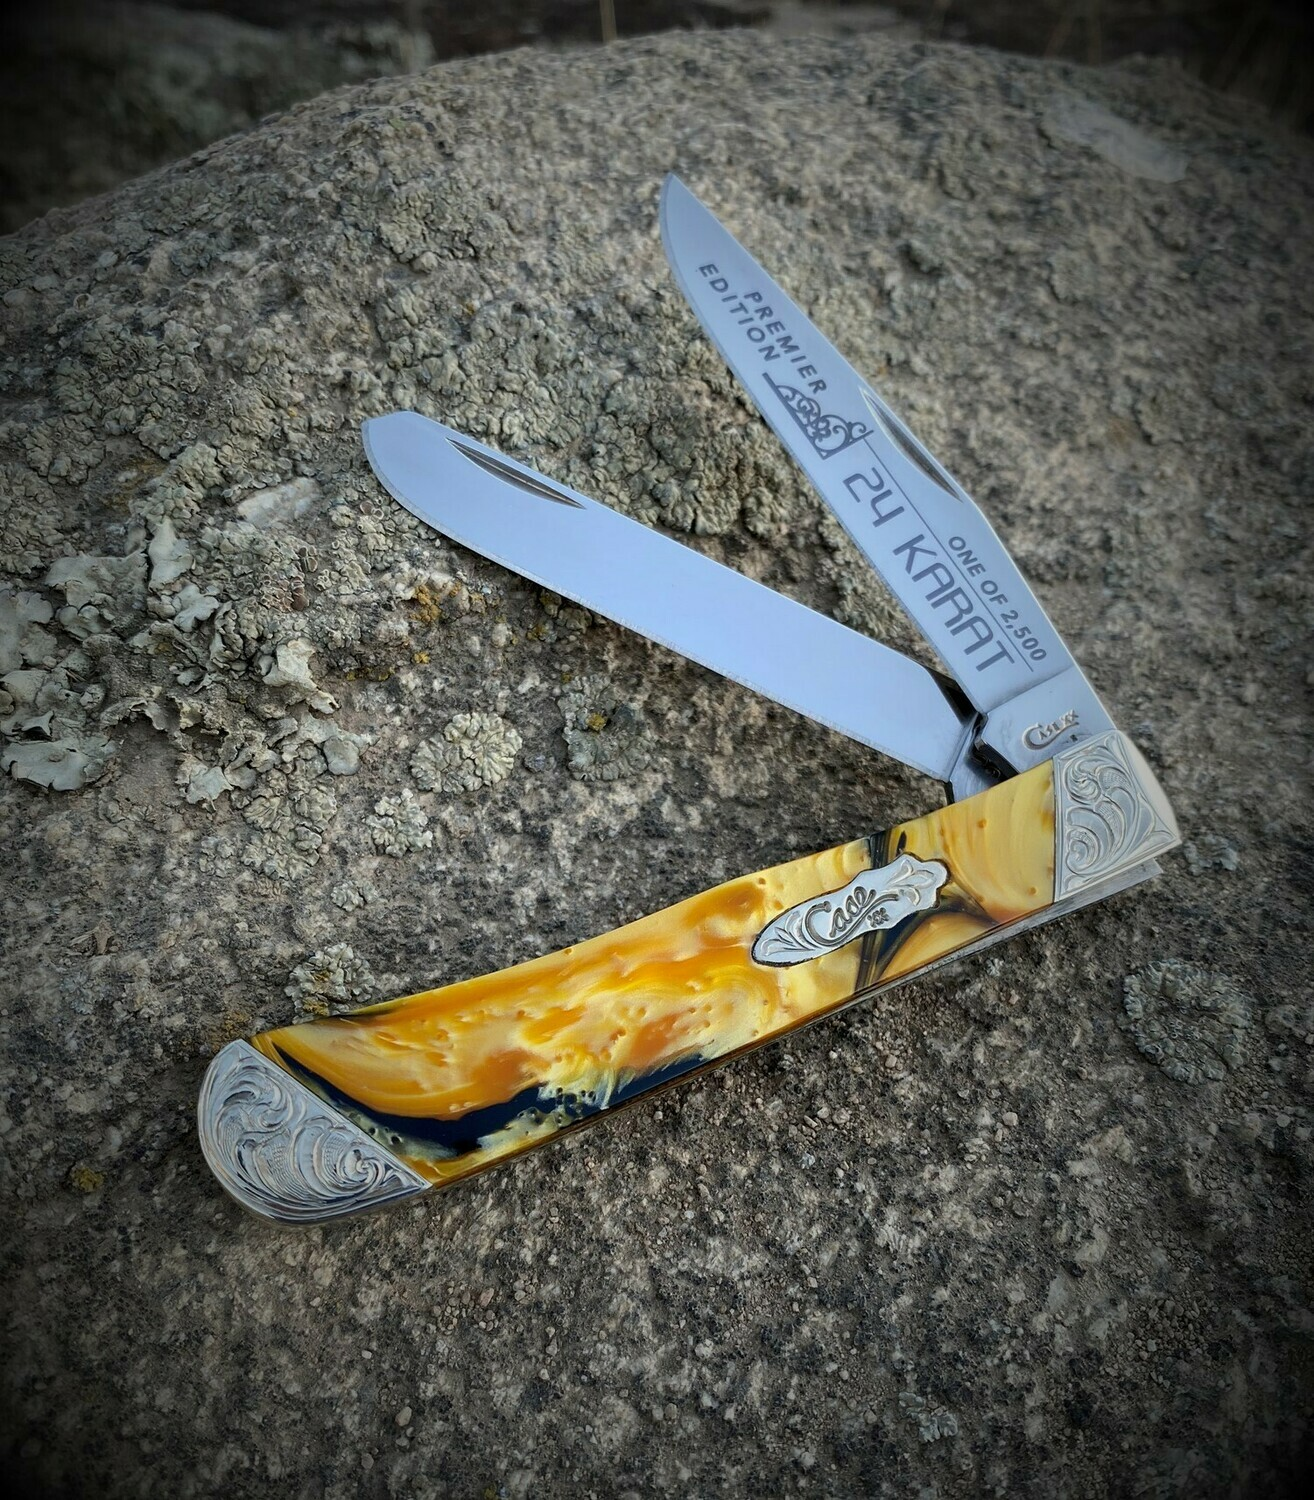 Case 24 Karat Pocket Knife